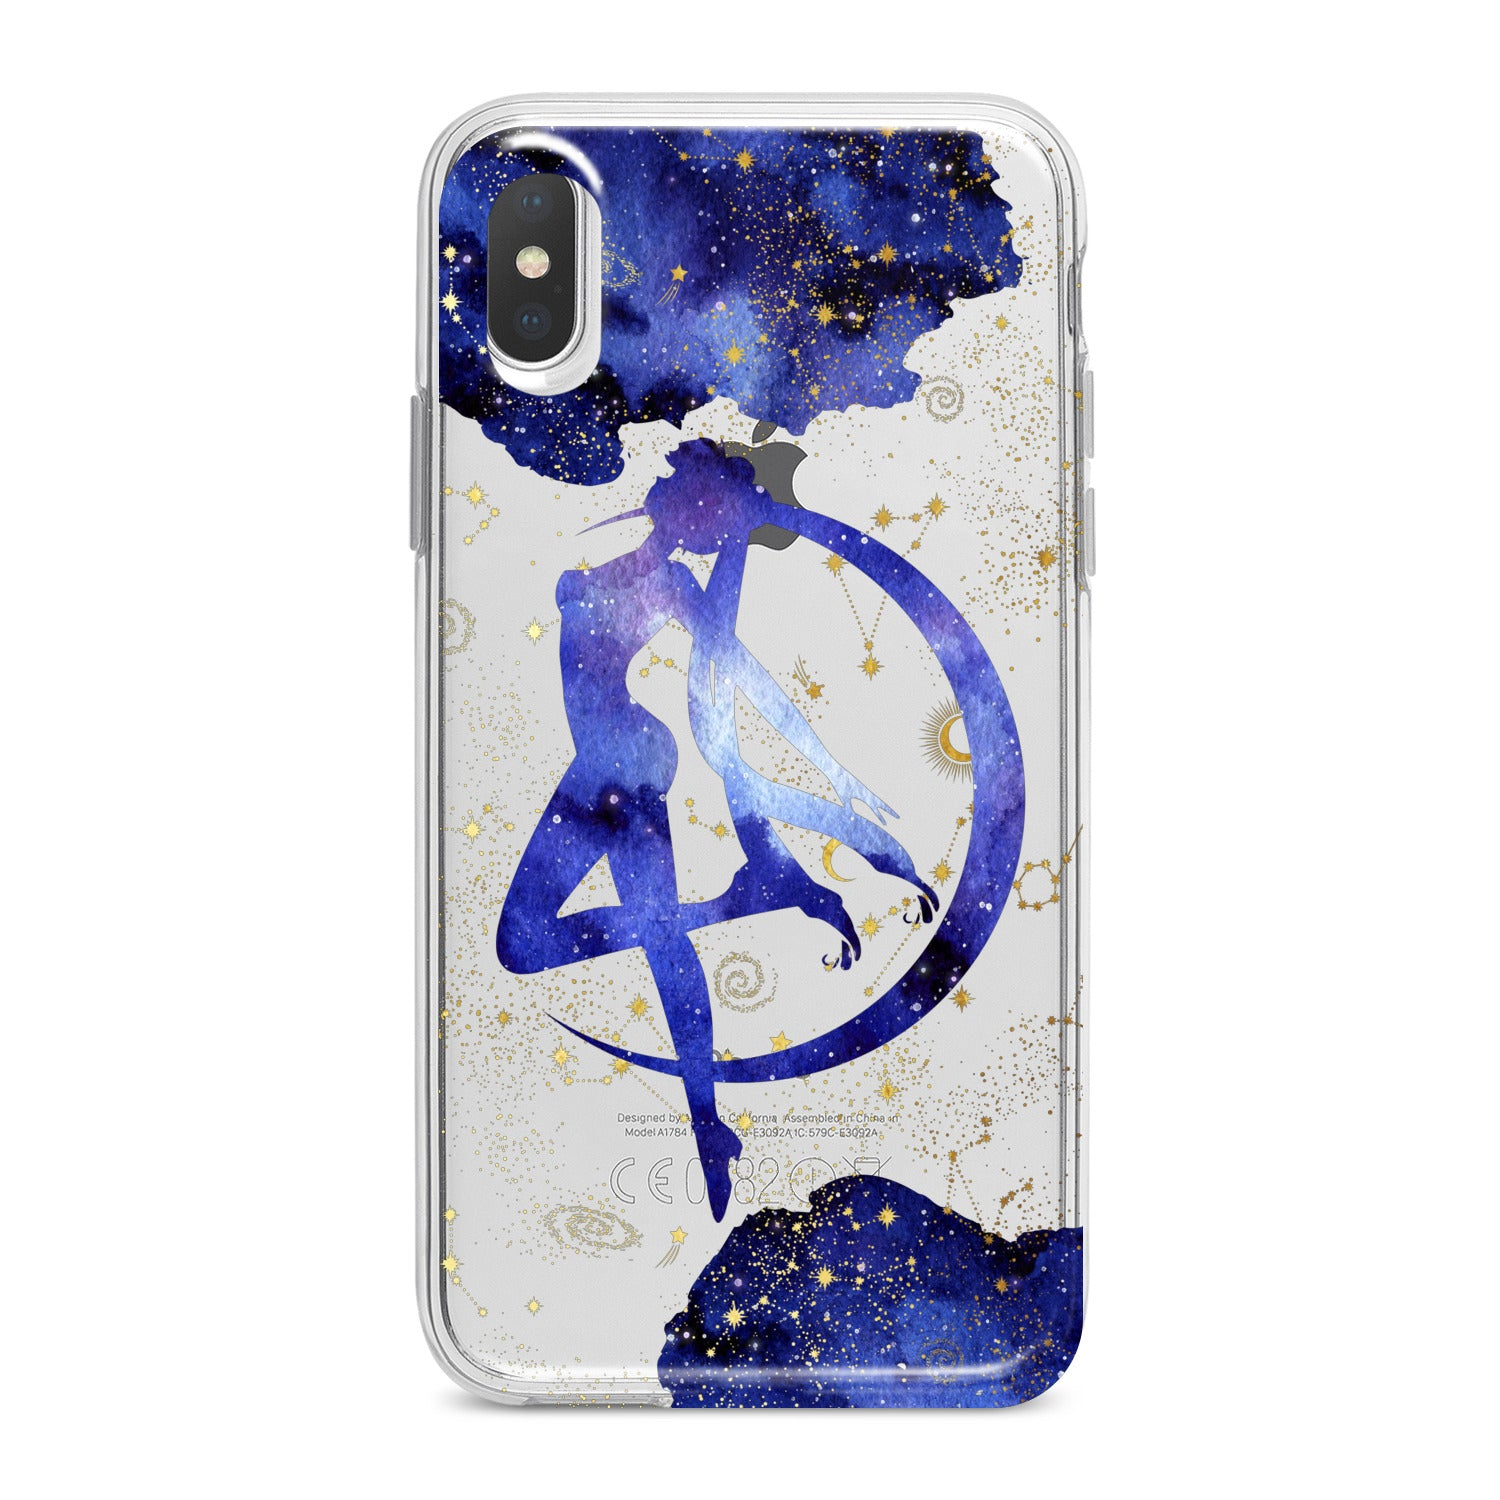 Lex Altern Blue Watercolor Sailor Moon Phone Case for your iPhone & Android phone.